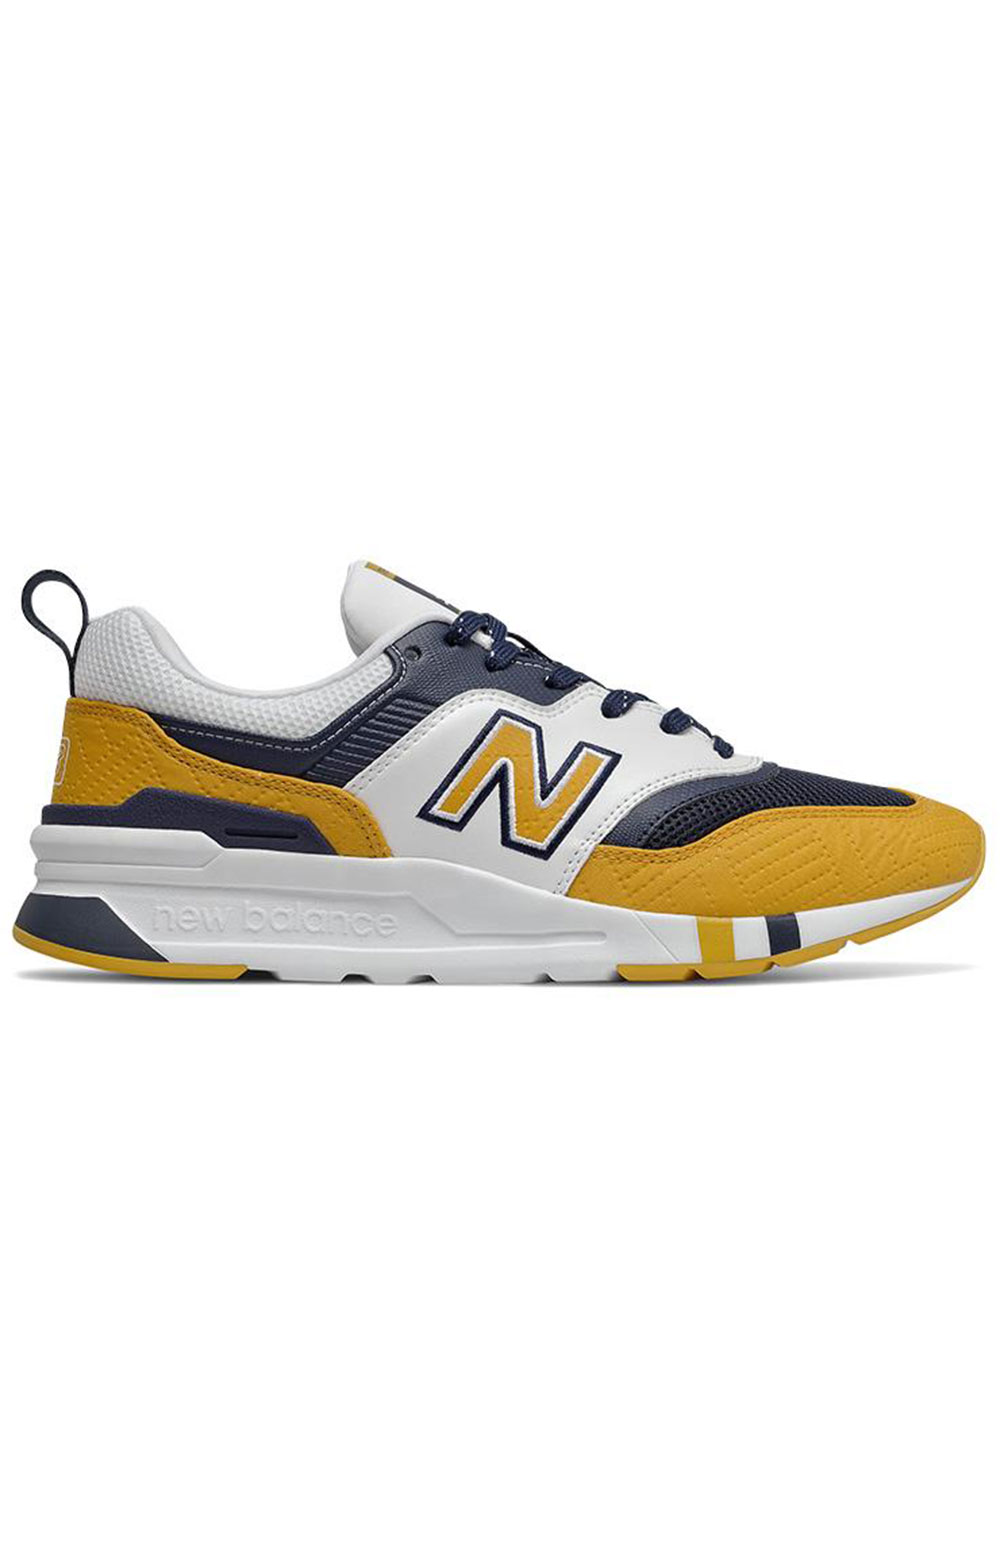 (CM997HBY) 997H Shoes - Yellow/Navy